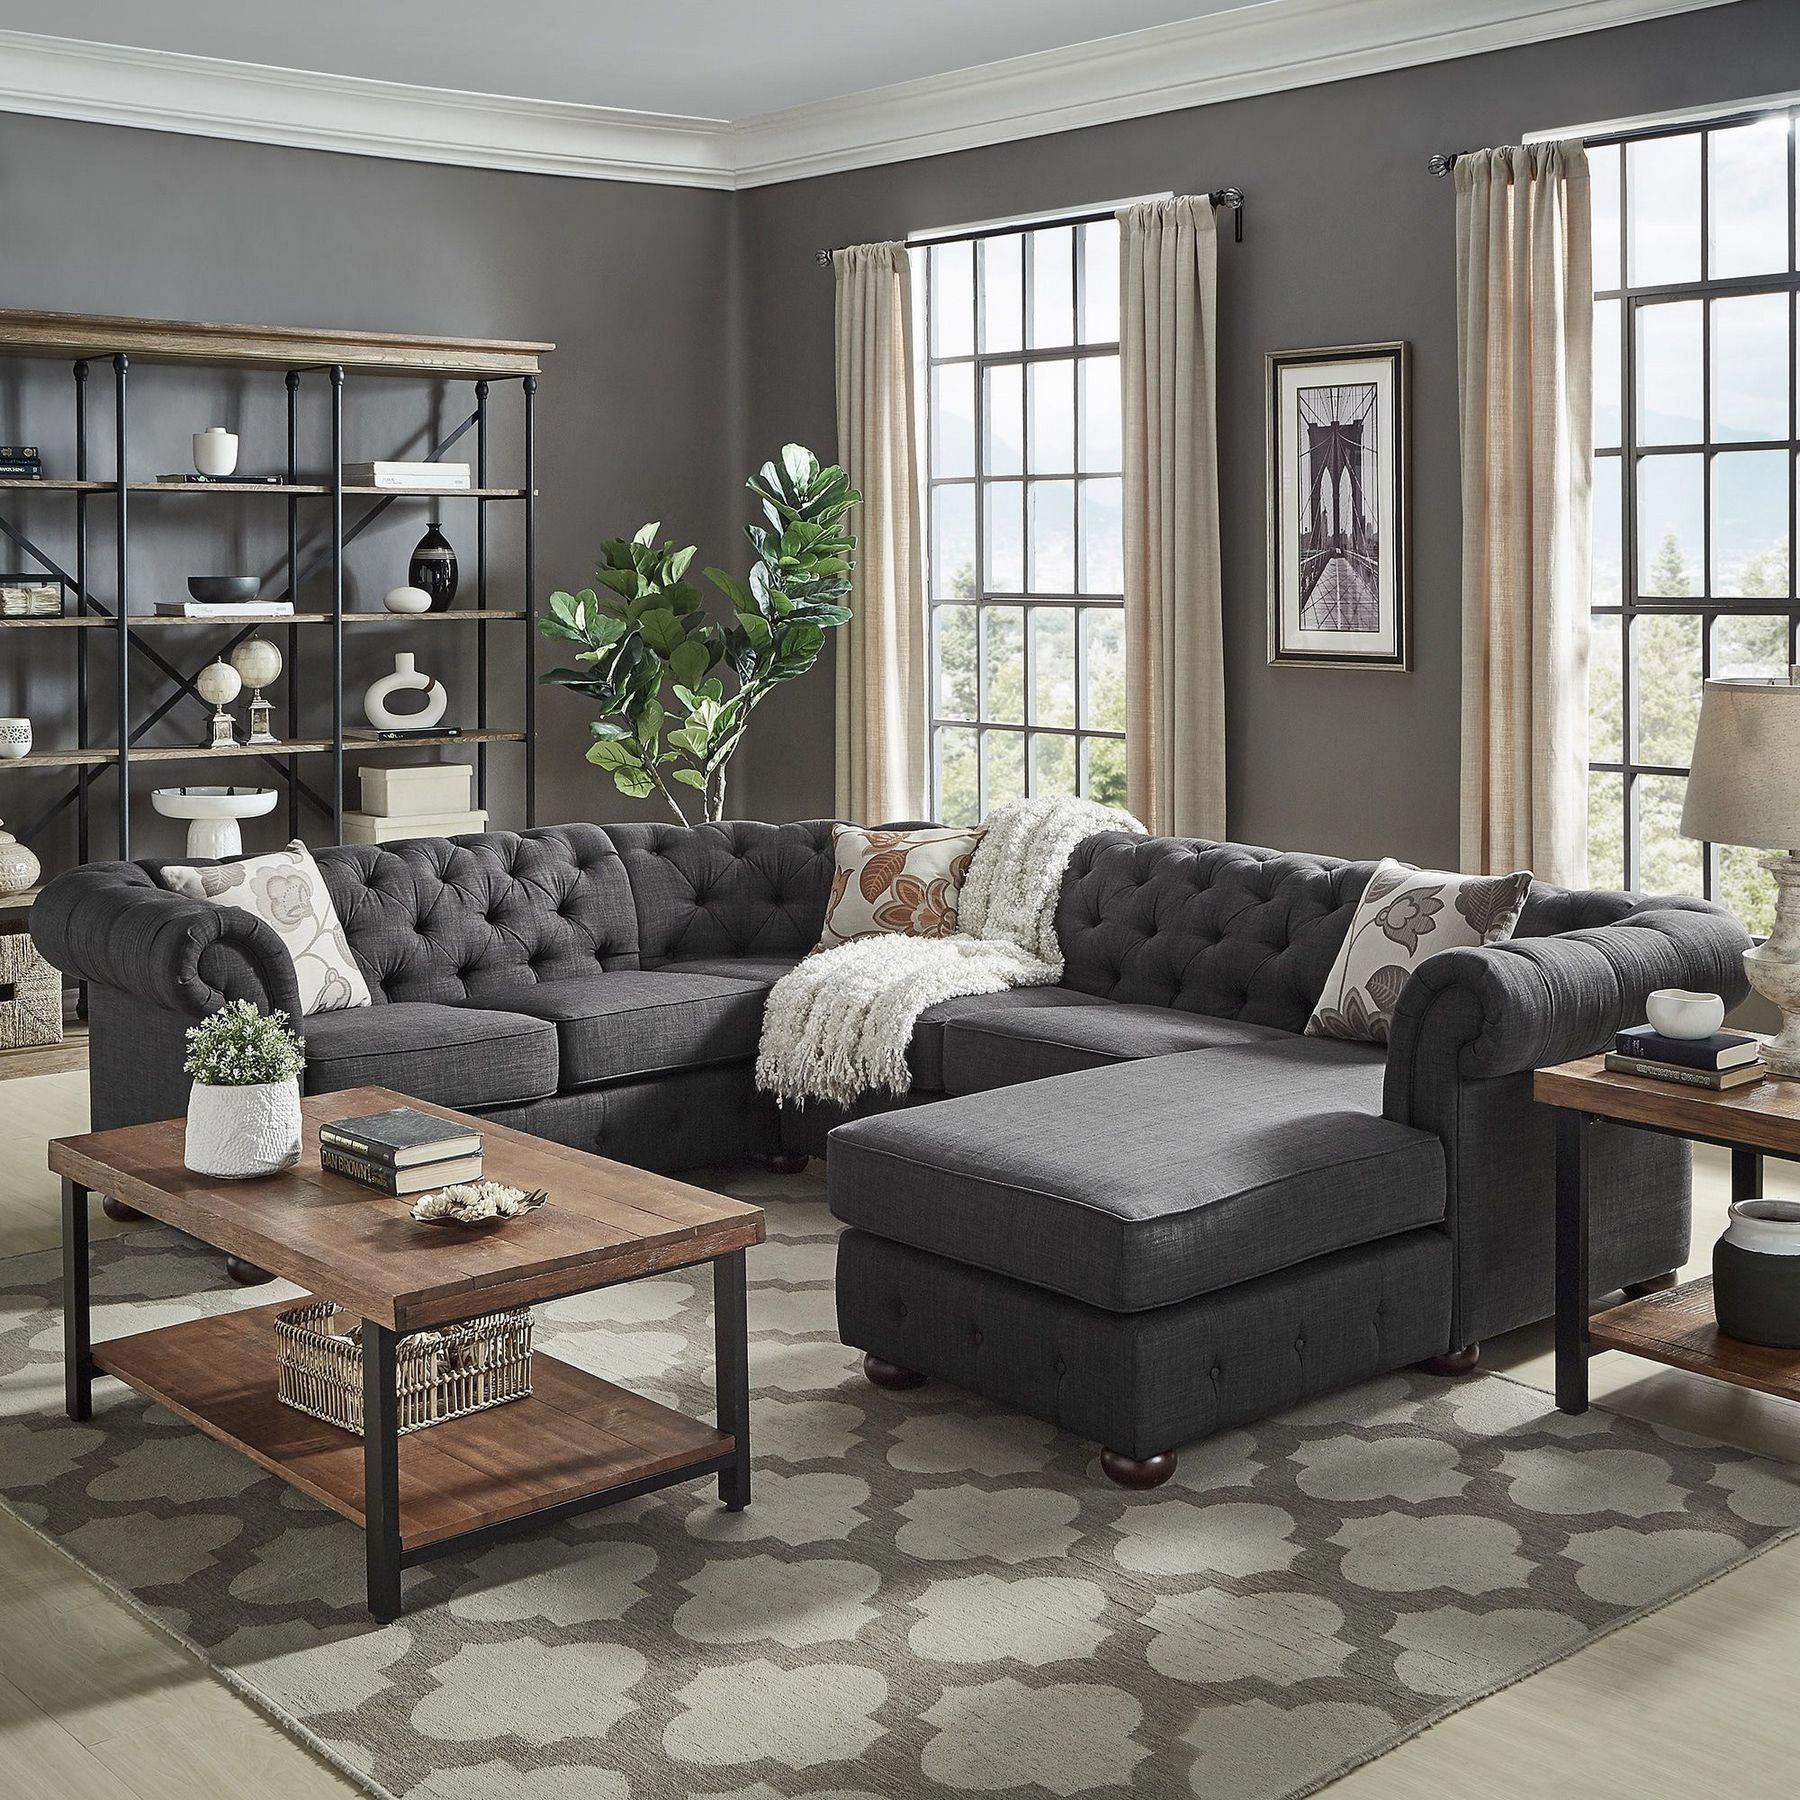 If Your Dining Room Is Used Just For Holidays Because It Appears Too Formal Cold A Grey Couch Living Room Small Living Room Decor Dark Grey Couch Living Room